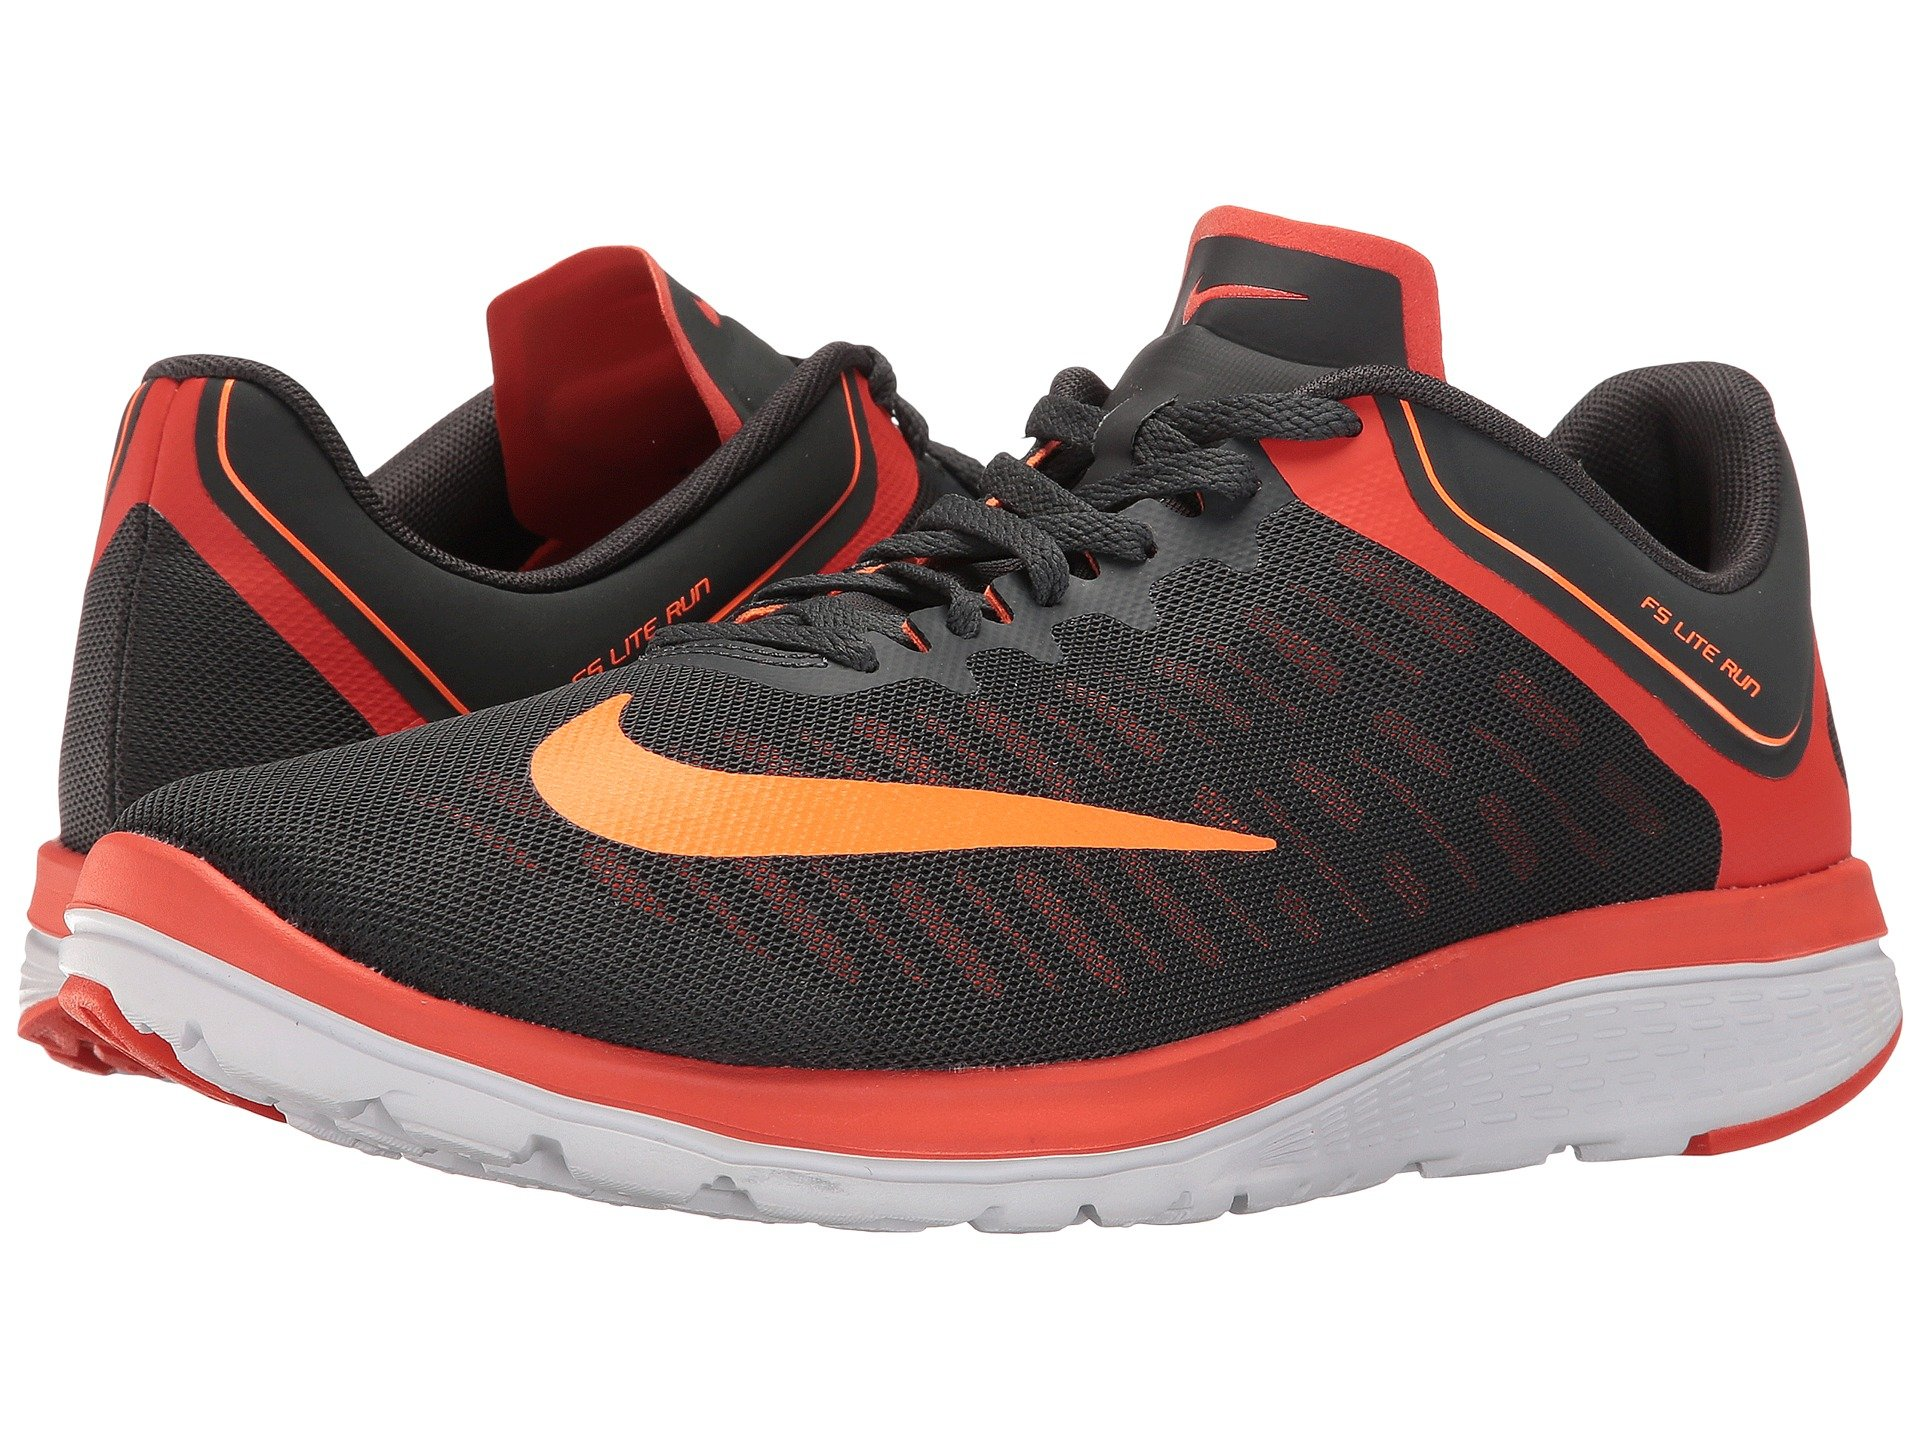 NIKE Fs Lite Run 4, Anthracite/Total Orange/Team Orange/White